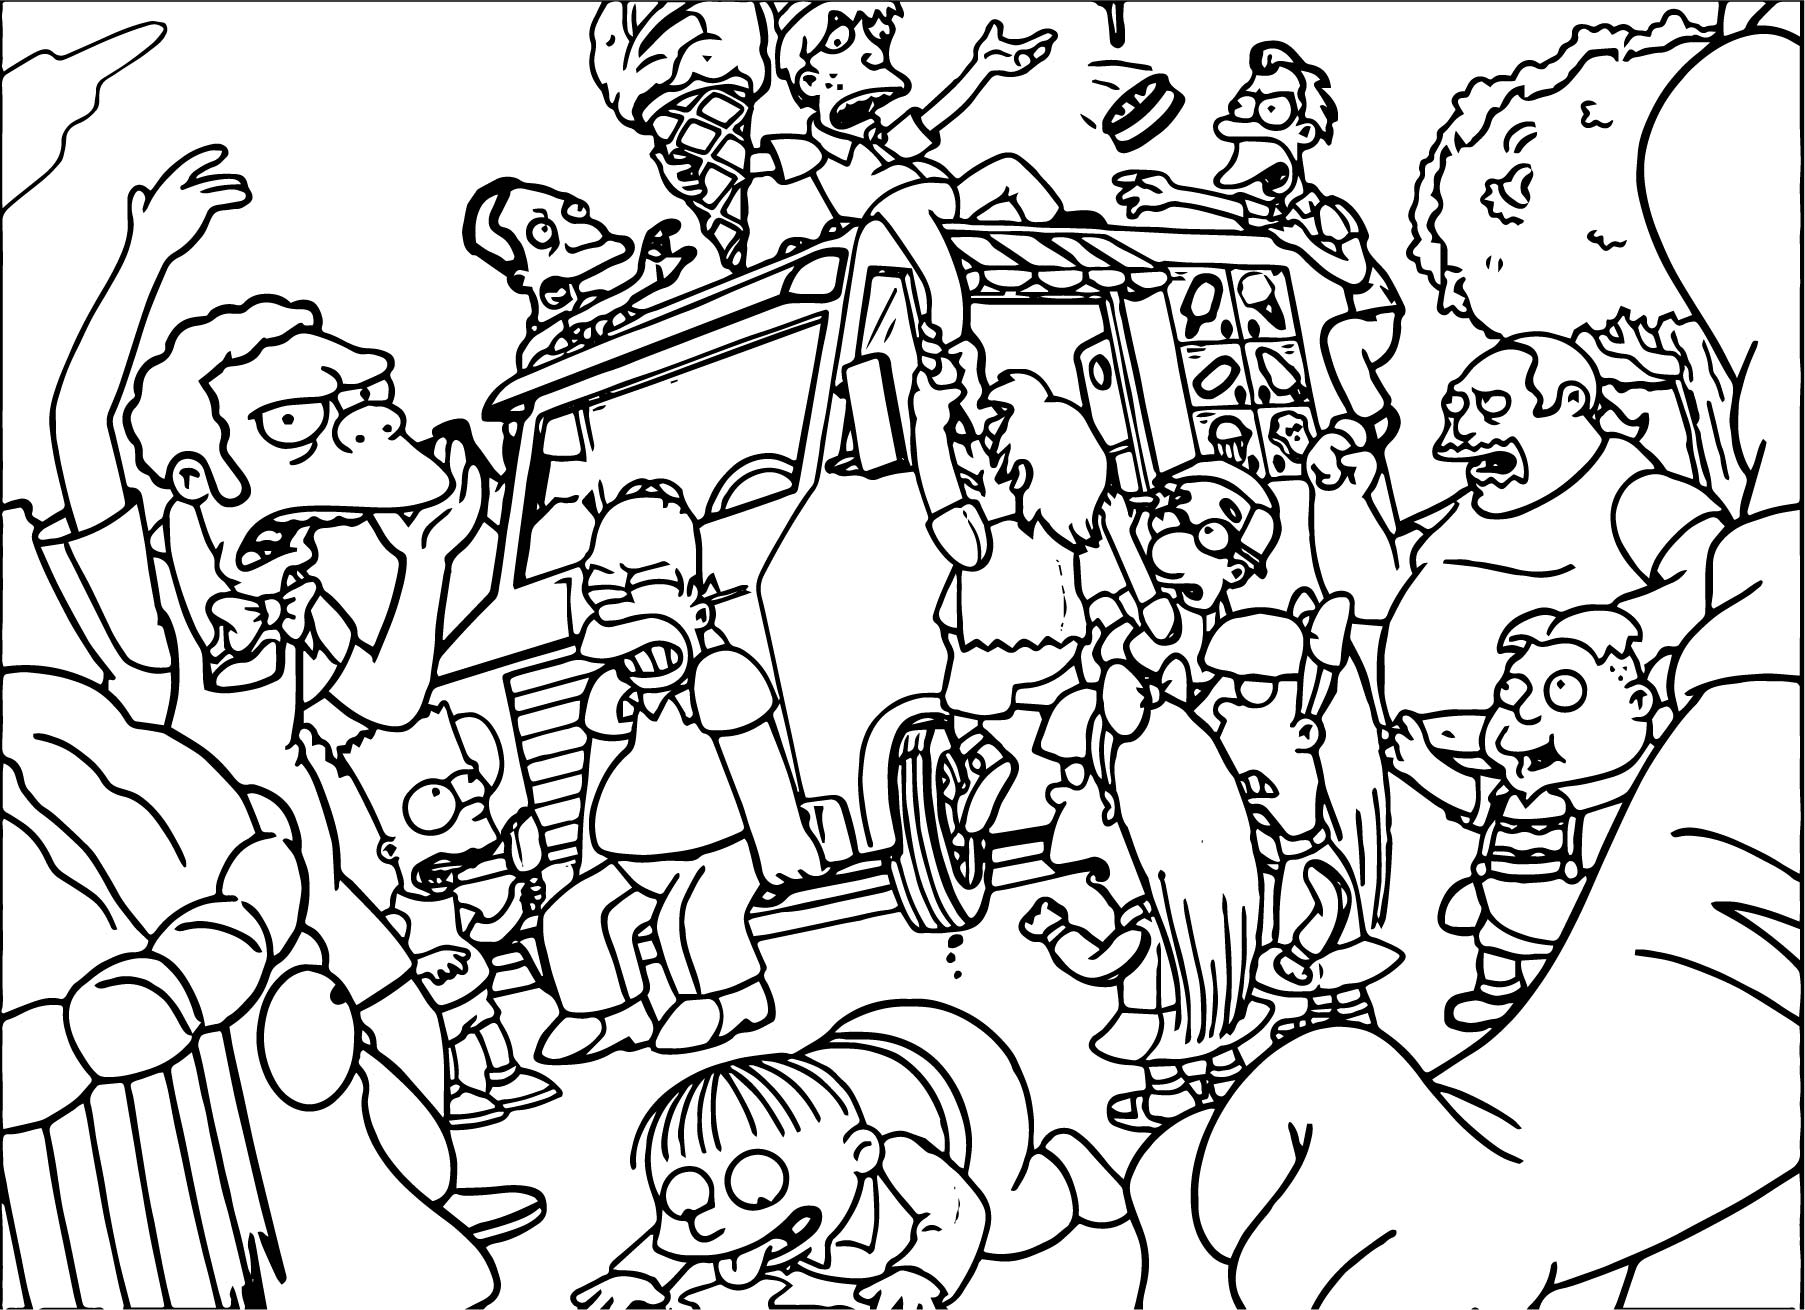 ice cream riot the simpsons coloring page - Simpsons Halloween Coloring Pages